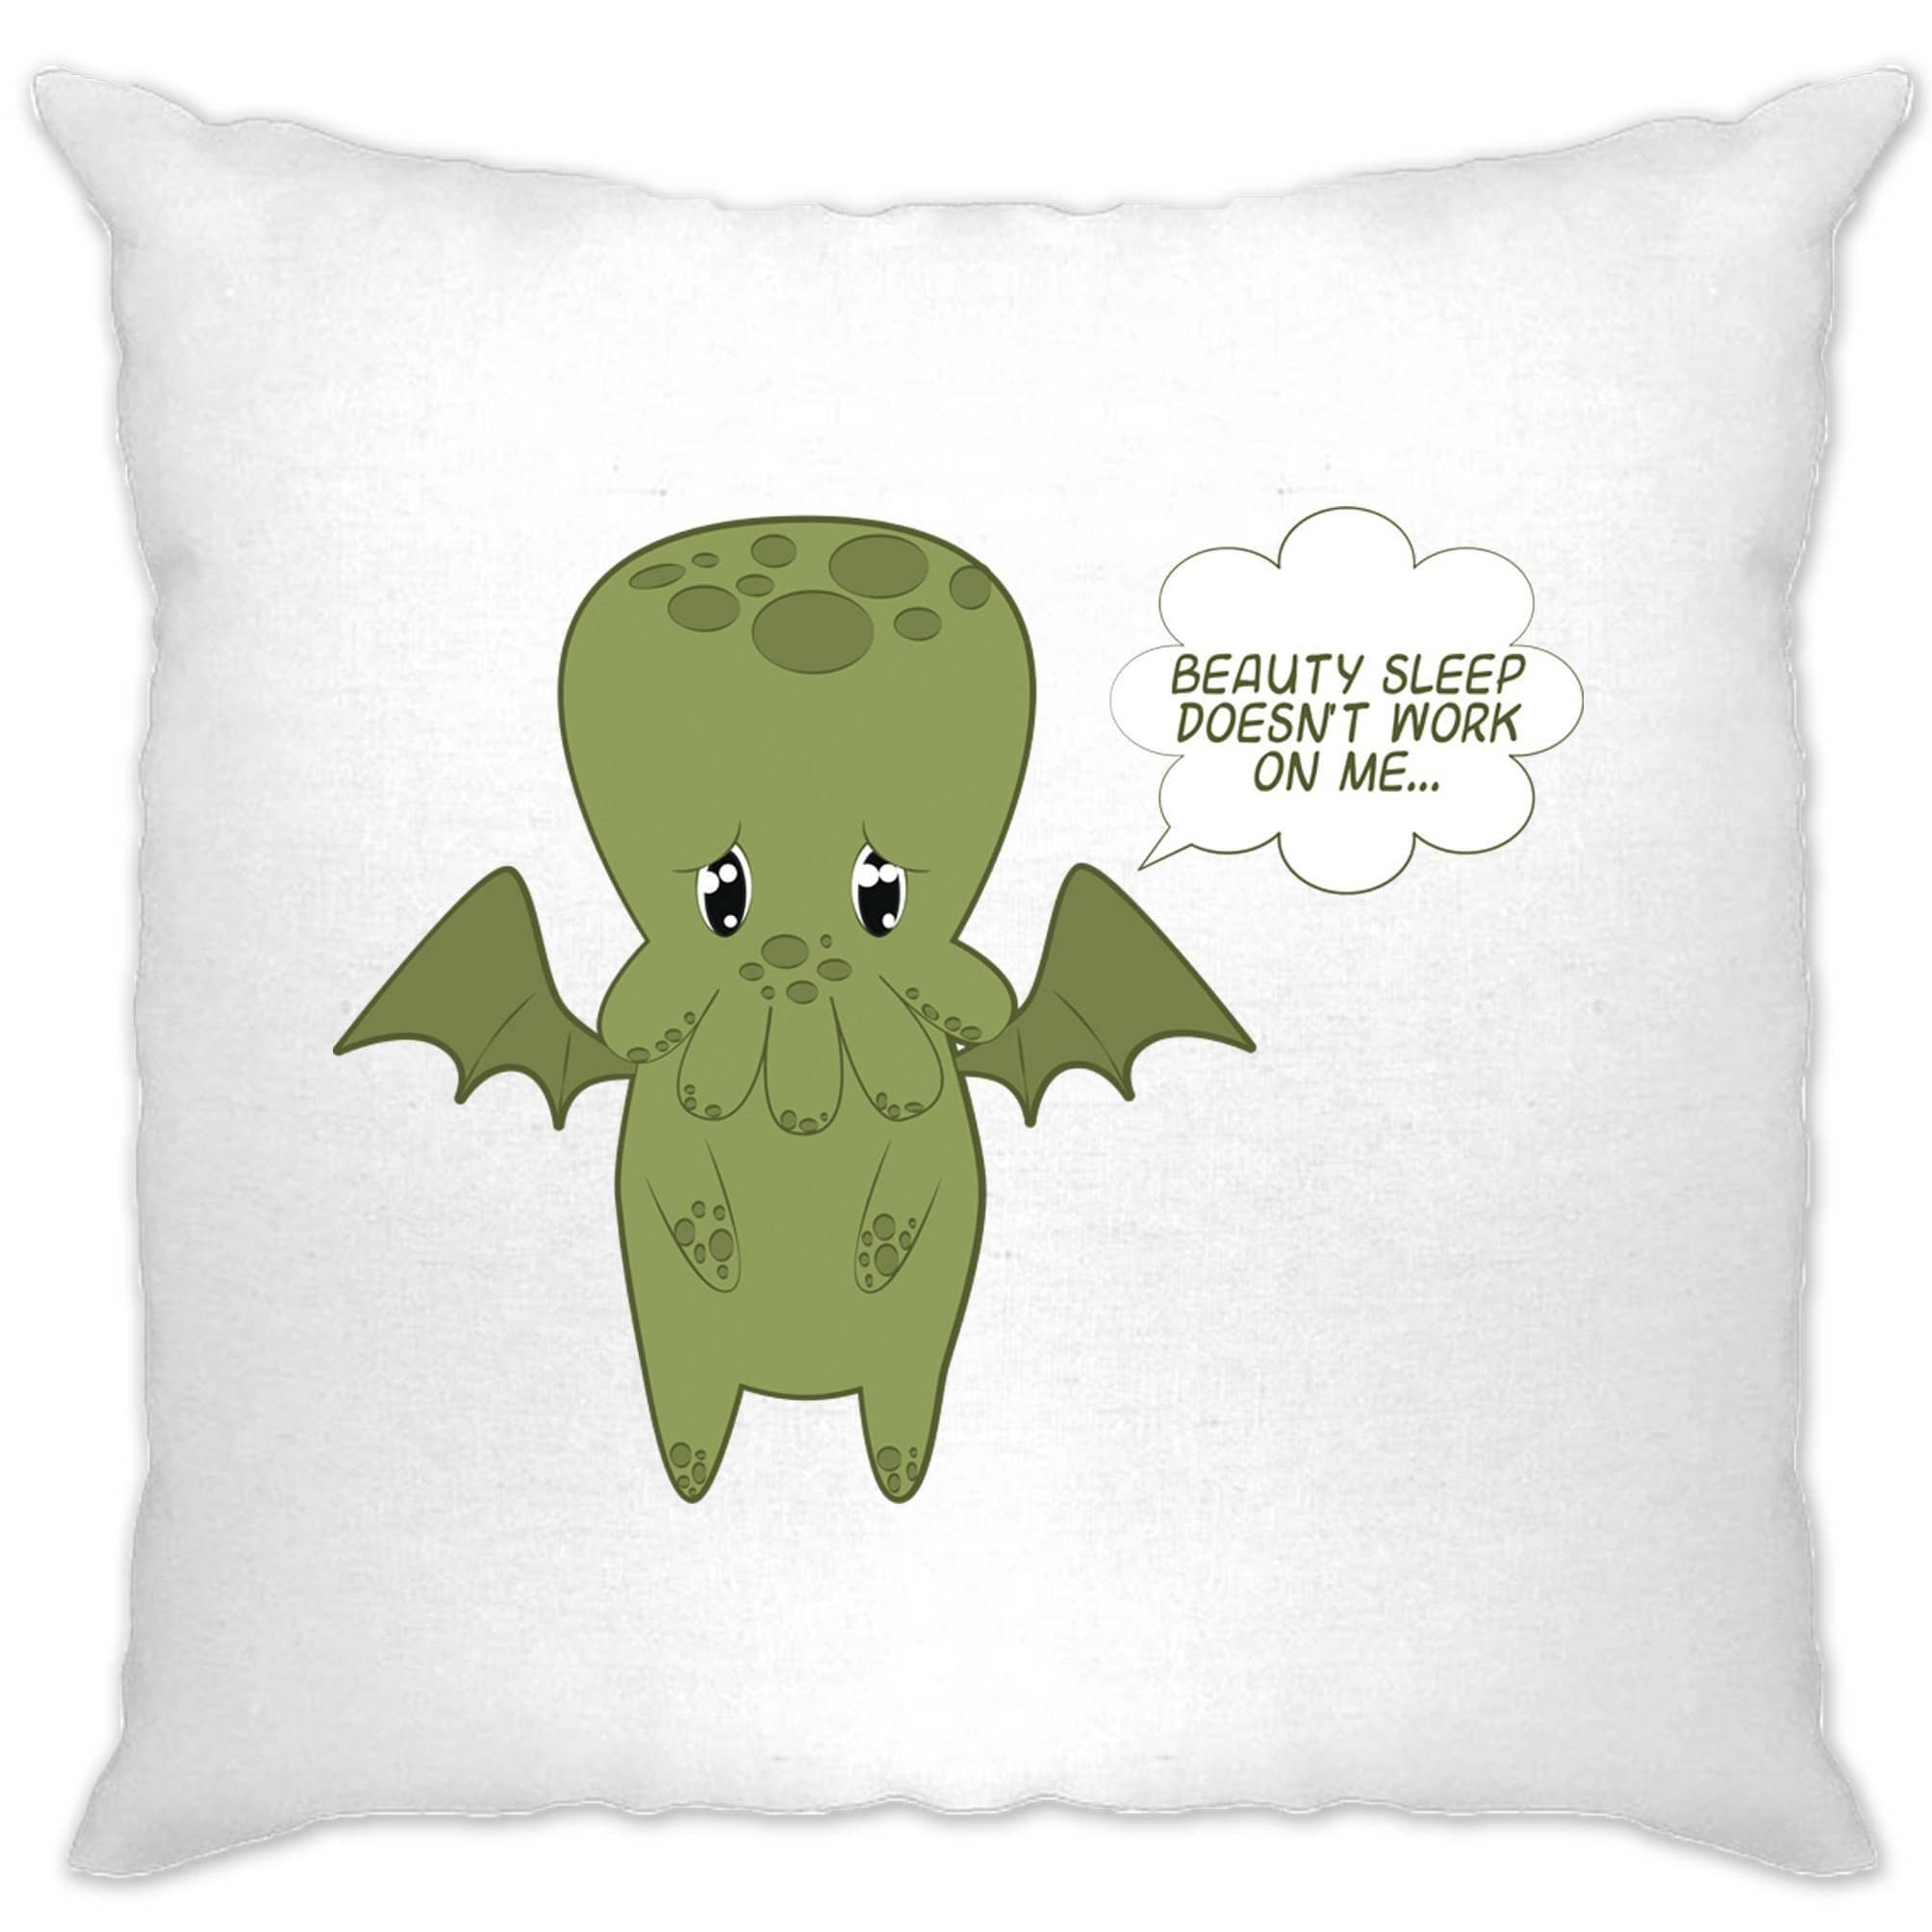 Cute Cthulhu Cushion Cover Beauty Sleep Doesn't Work On Me